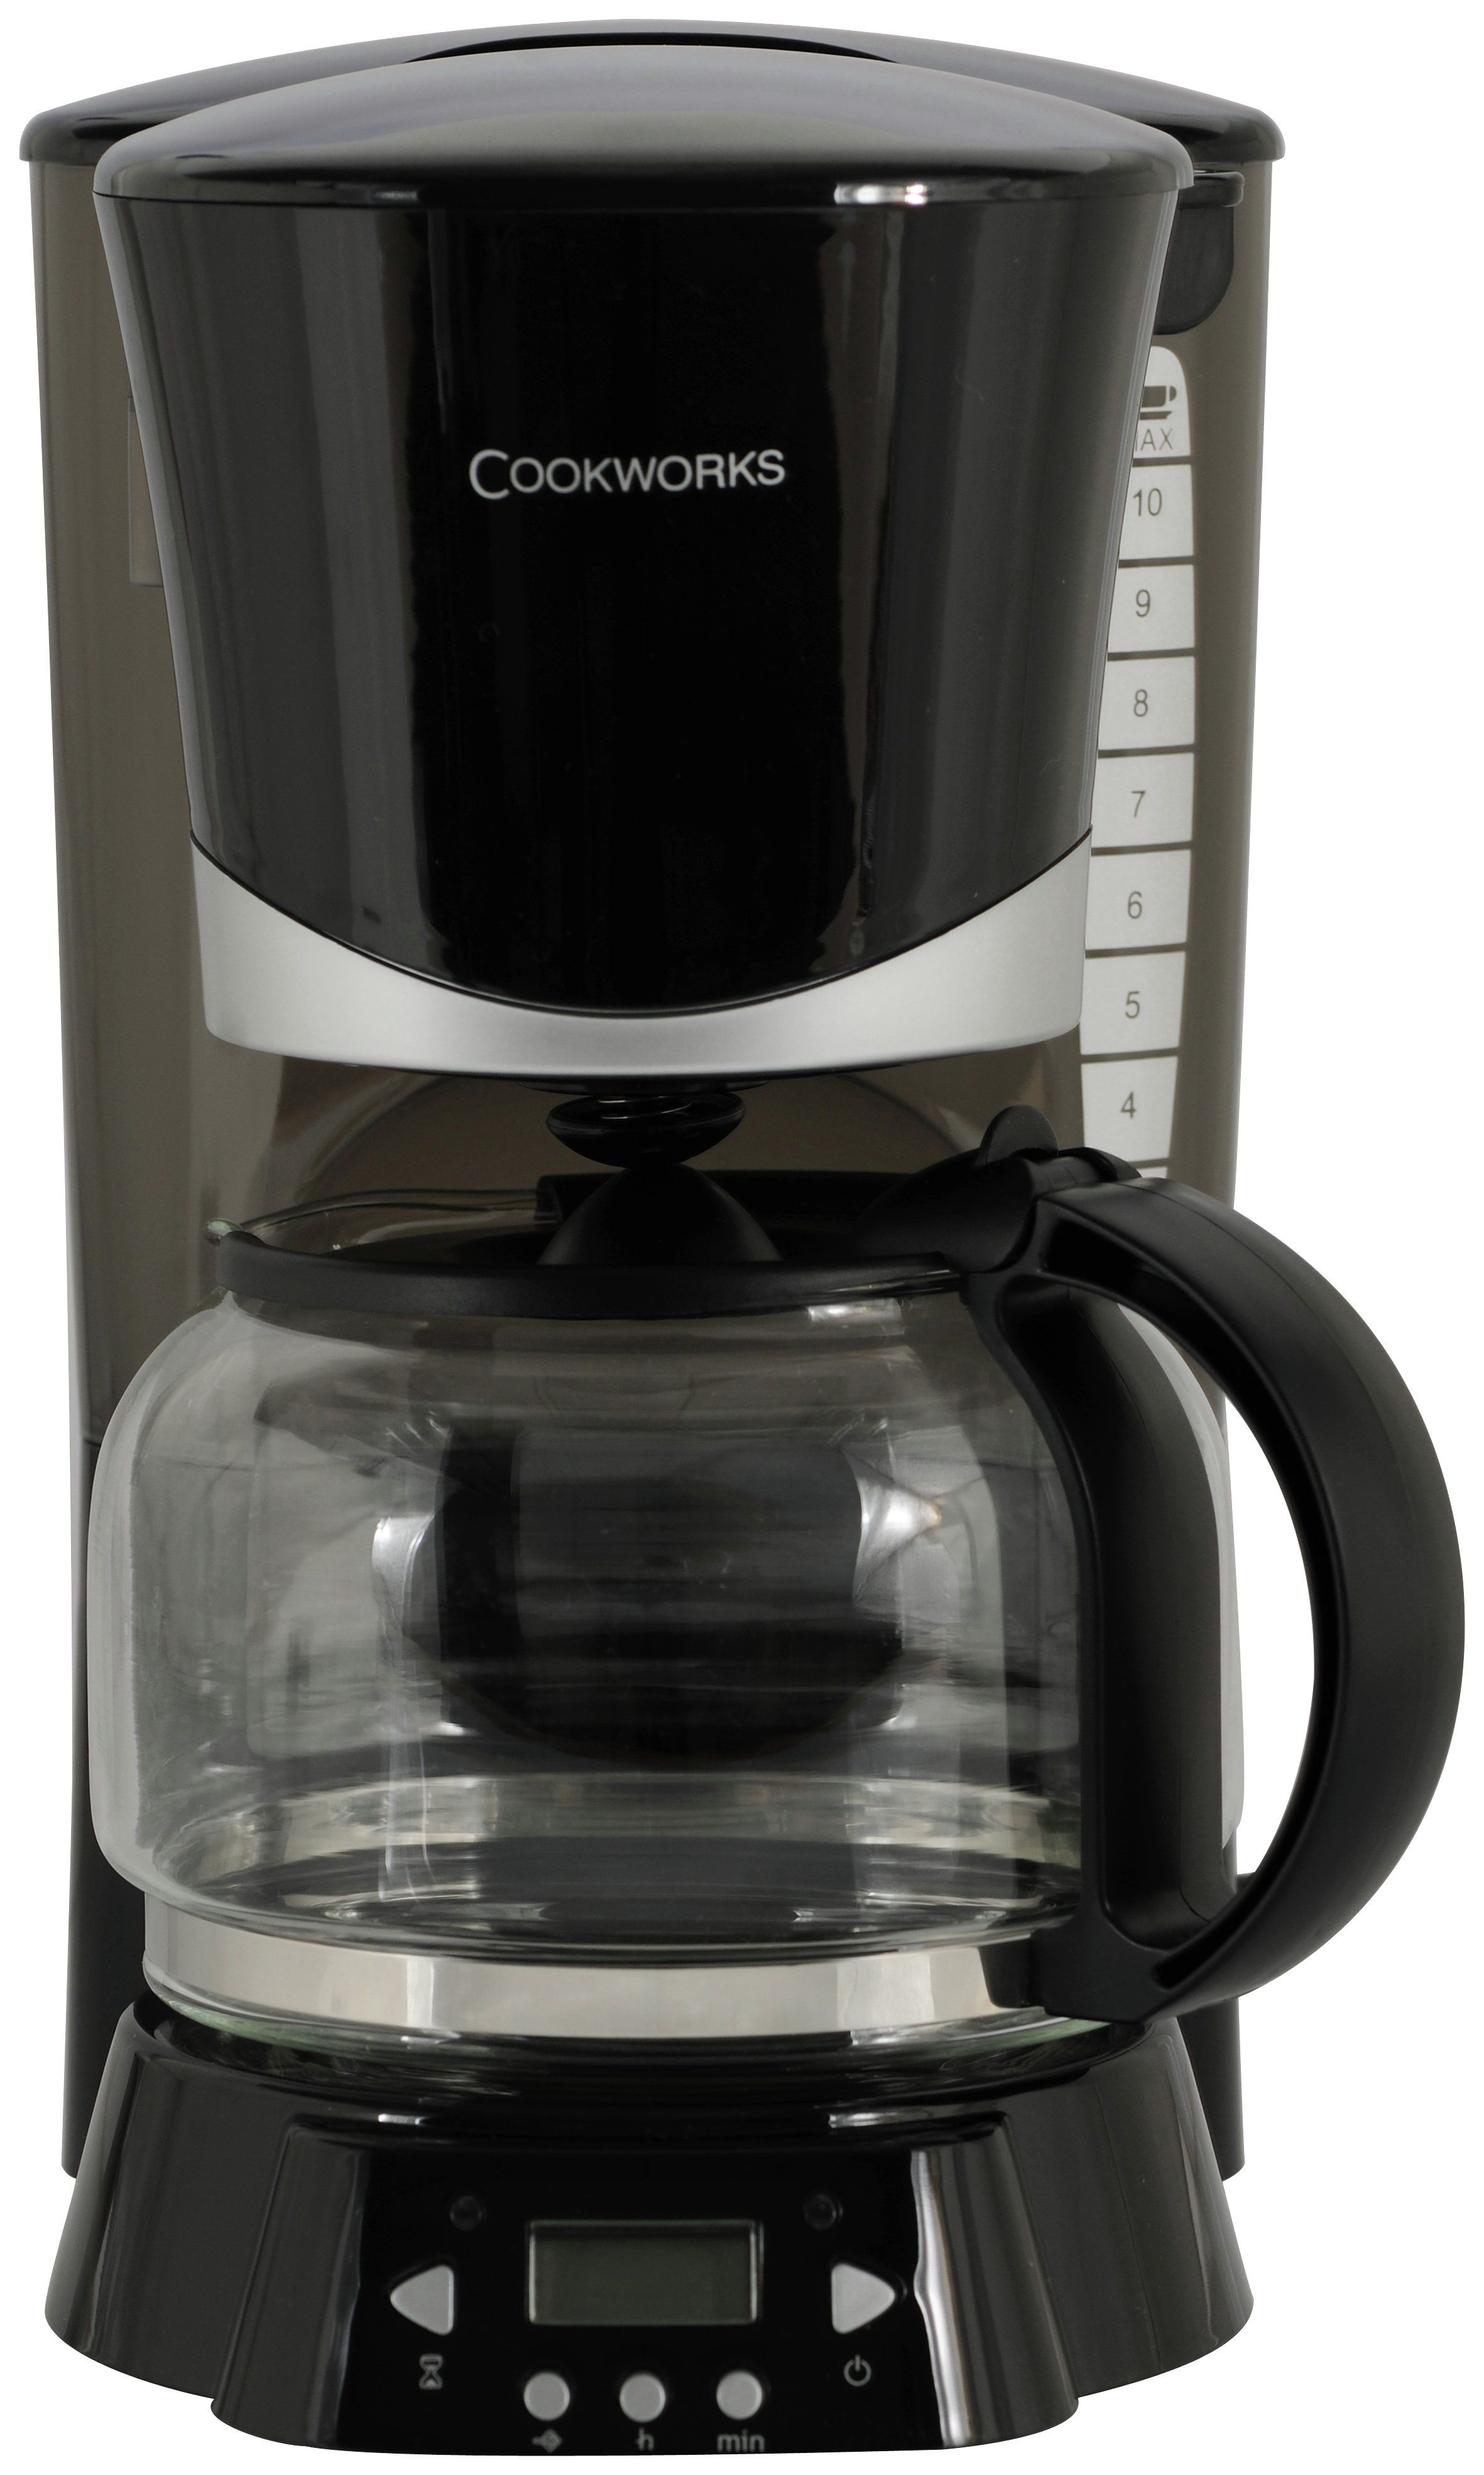 Cookworks Black Filter Coffee Machine Serves Up Delicious